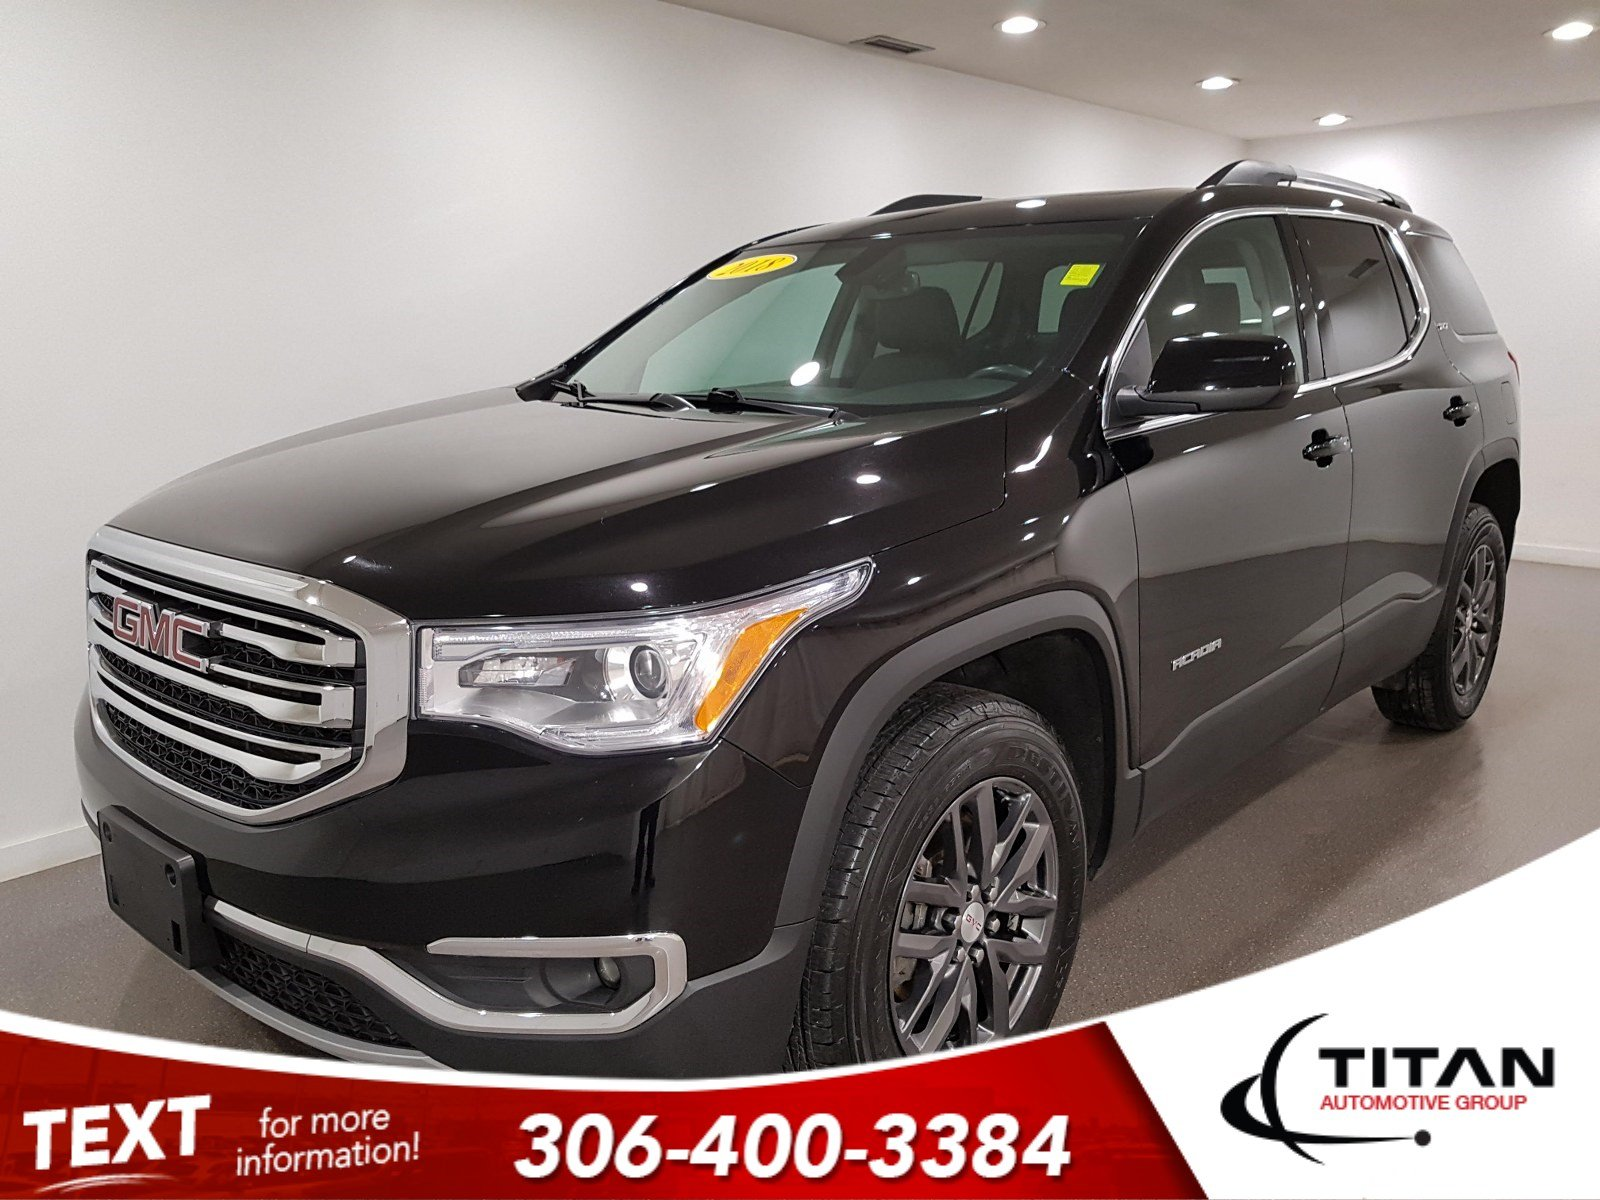 Pre-Owned 2018 GMC Acadia SLT AWD V6 | Heated Leather | Bose | Dual Sunroof | Navigation | Bluetooth | 3rd Row | Back Up Cam